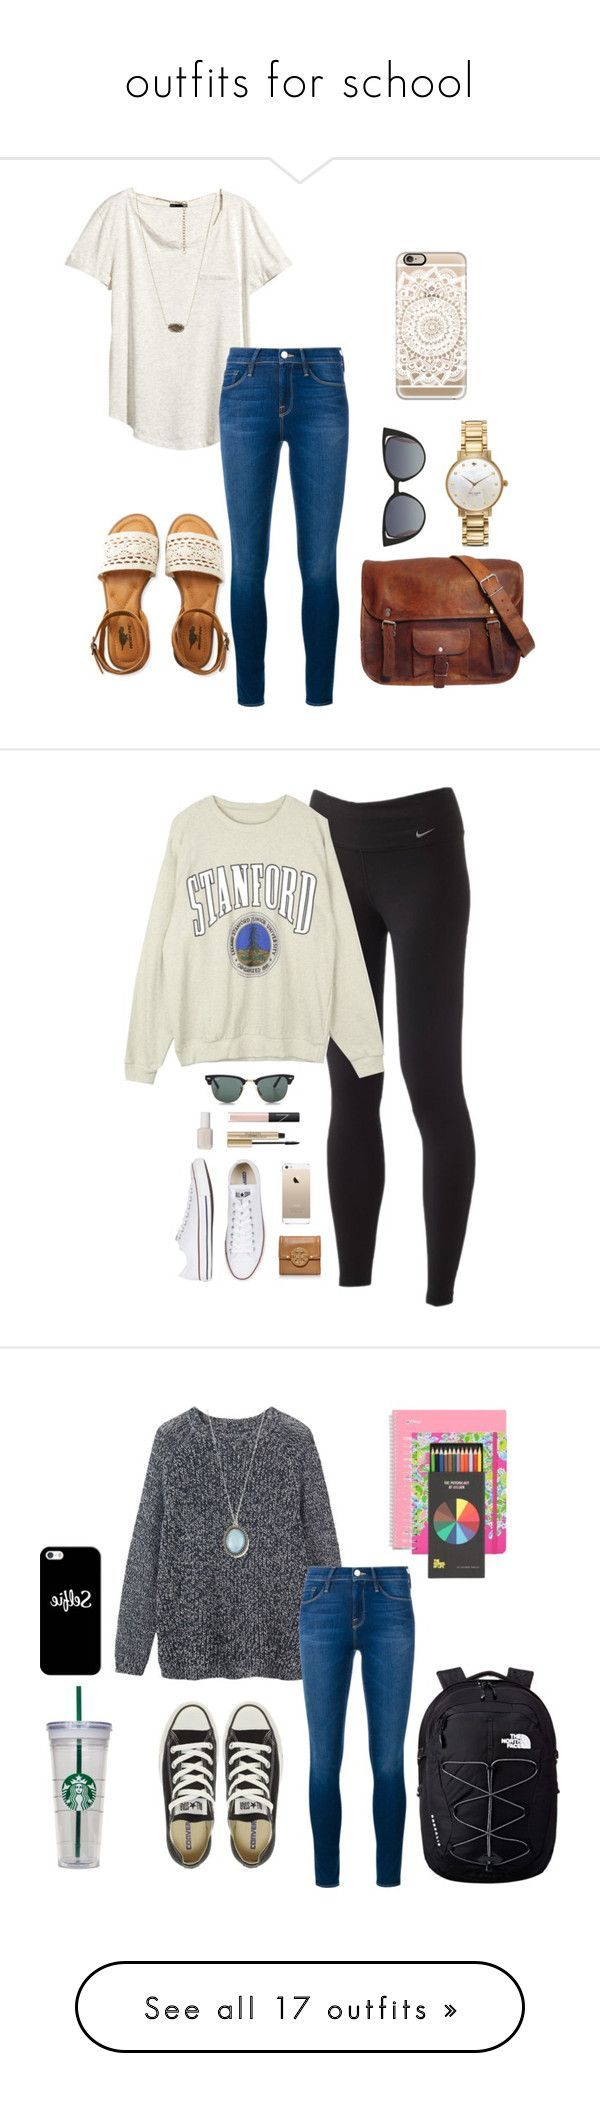 """""""outfits for school"""" by sweatshirt-irwin ❤ liked on Polyvore featuring H&M, Frame Denim, Aéropostale, Kendra Scott, Kate Spade, Fendi, Casetify, NIKE, Converse and Ray-Ban"""